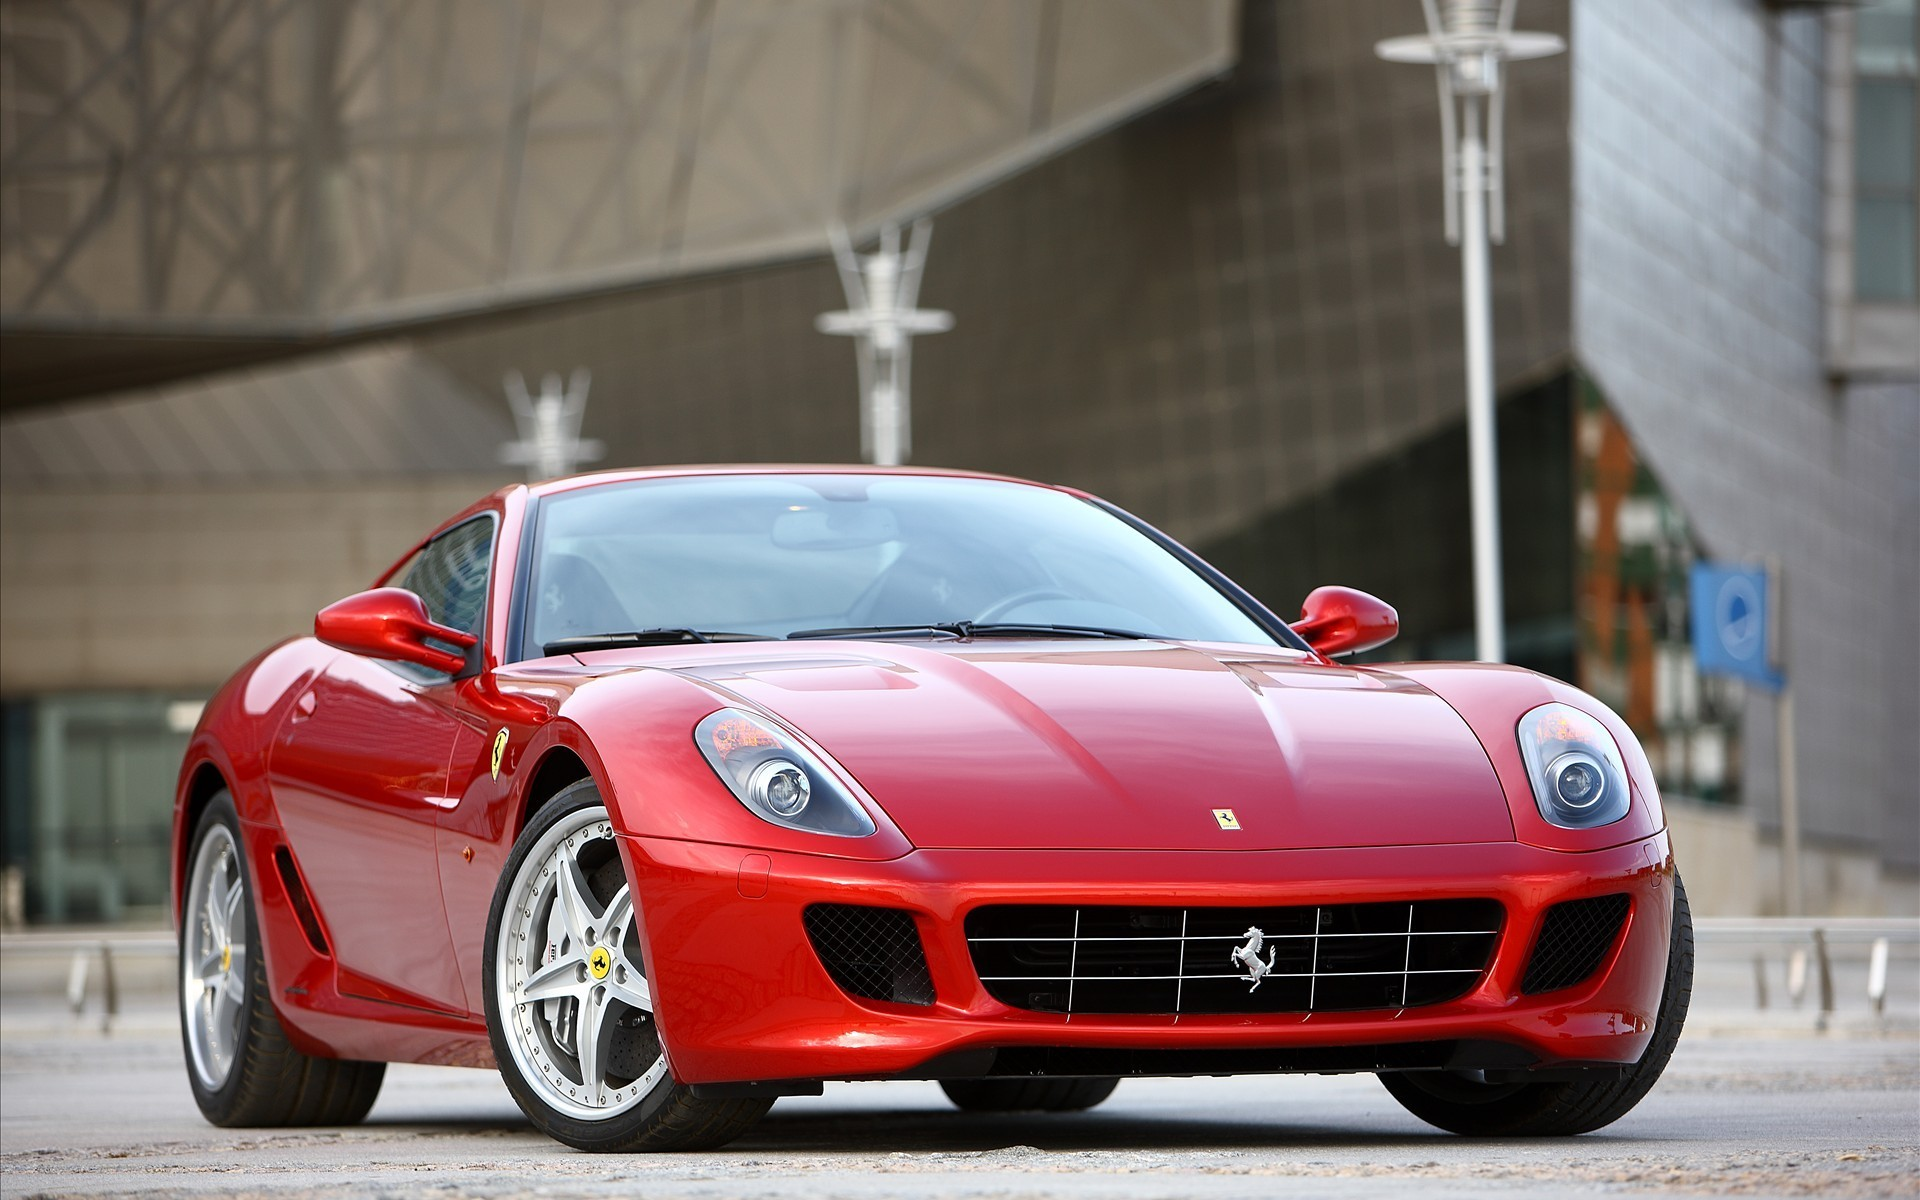 cars Ferrari Ferrari 599 HD Wallpaper